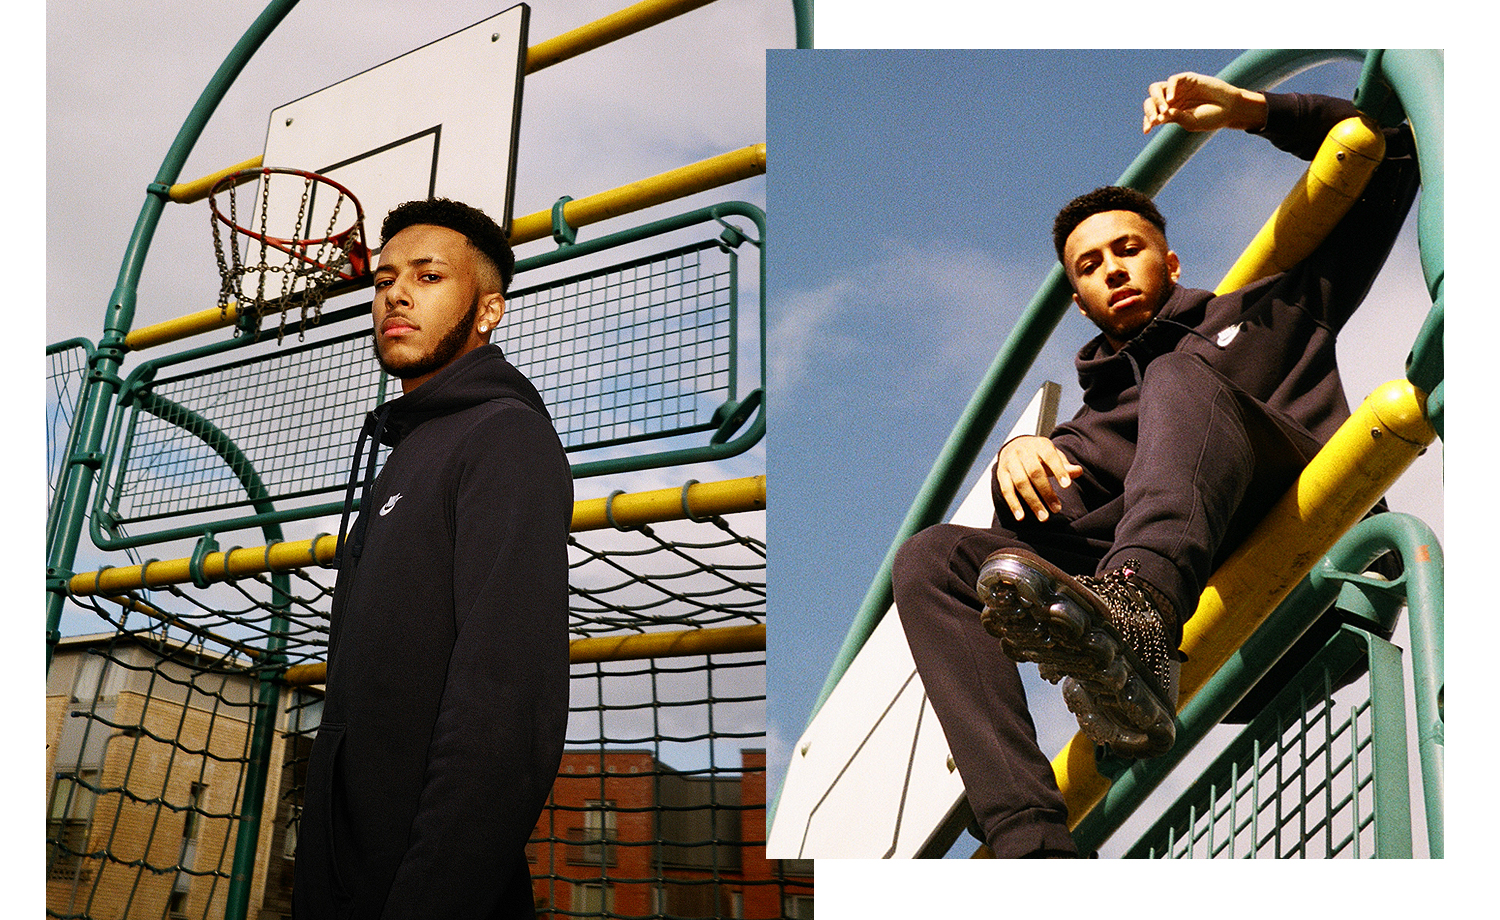 Interview: Yizzy on Hustling Hard, Taking Grime Global and Lighting up the FIFA 20 Soundtrack